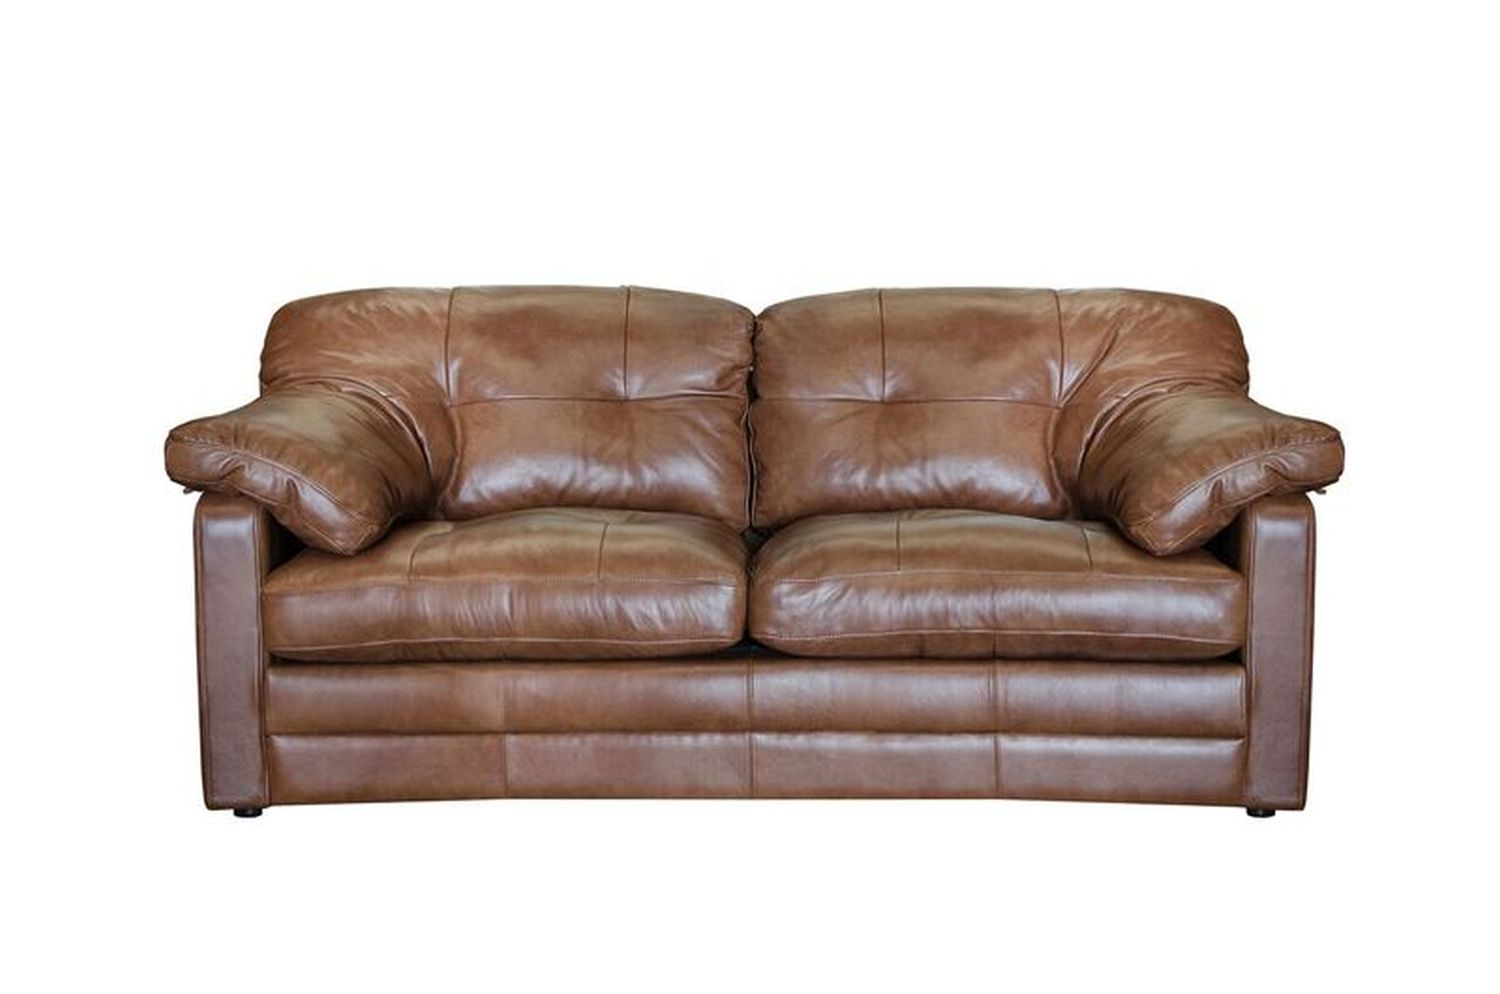 Image of Alexander & James Bailey 2 Seater Leather Sofa